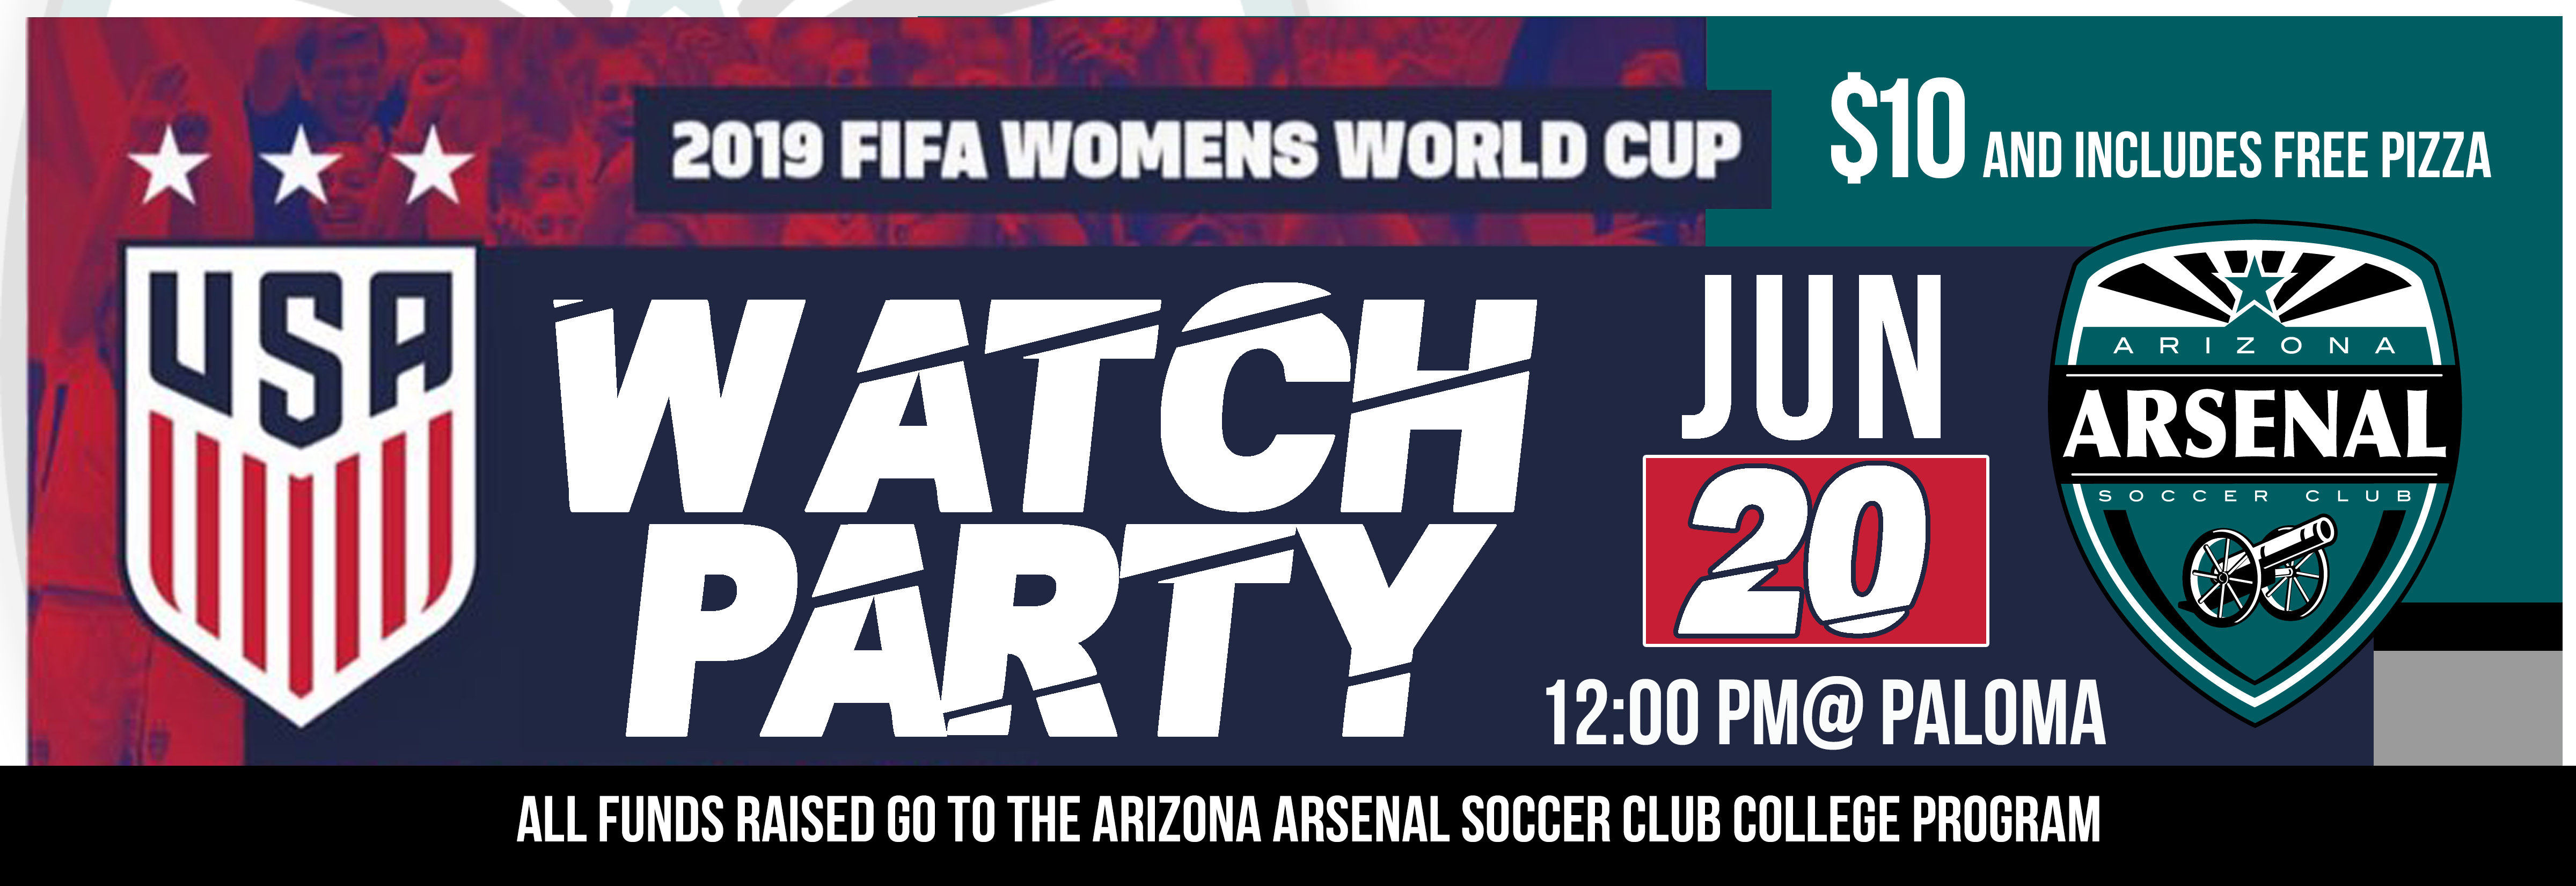 US Womens Worls Cup Watch Party